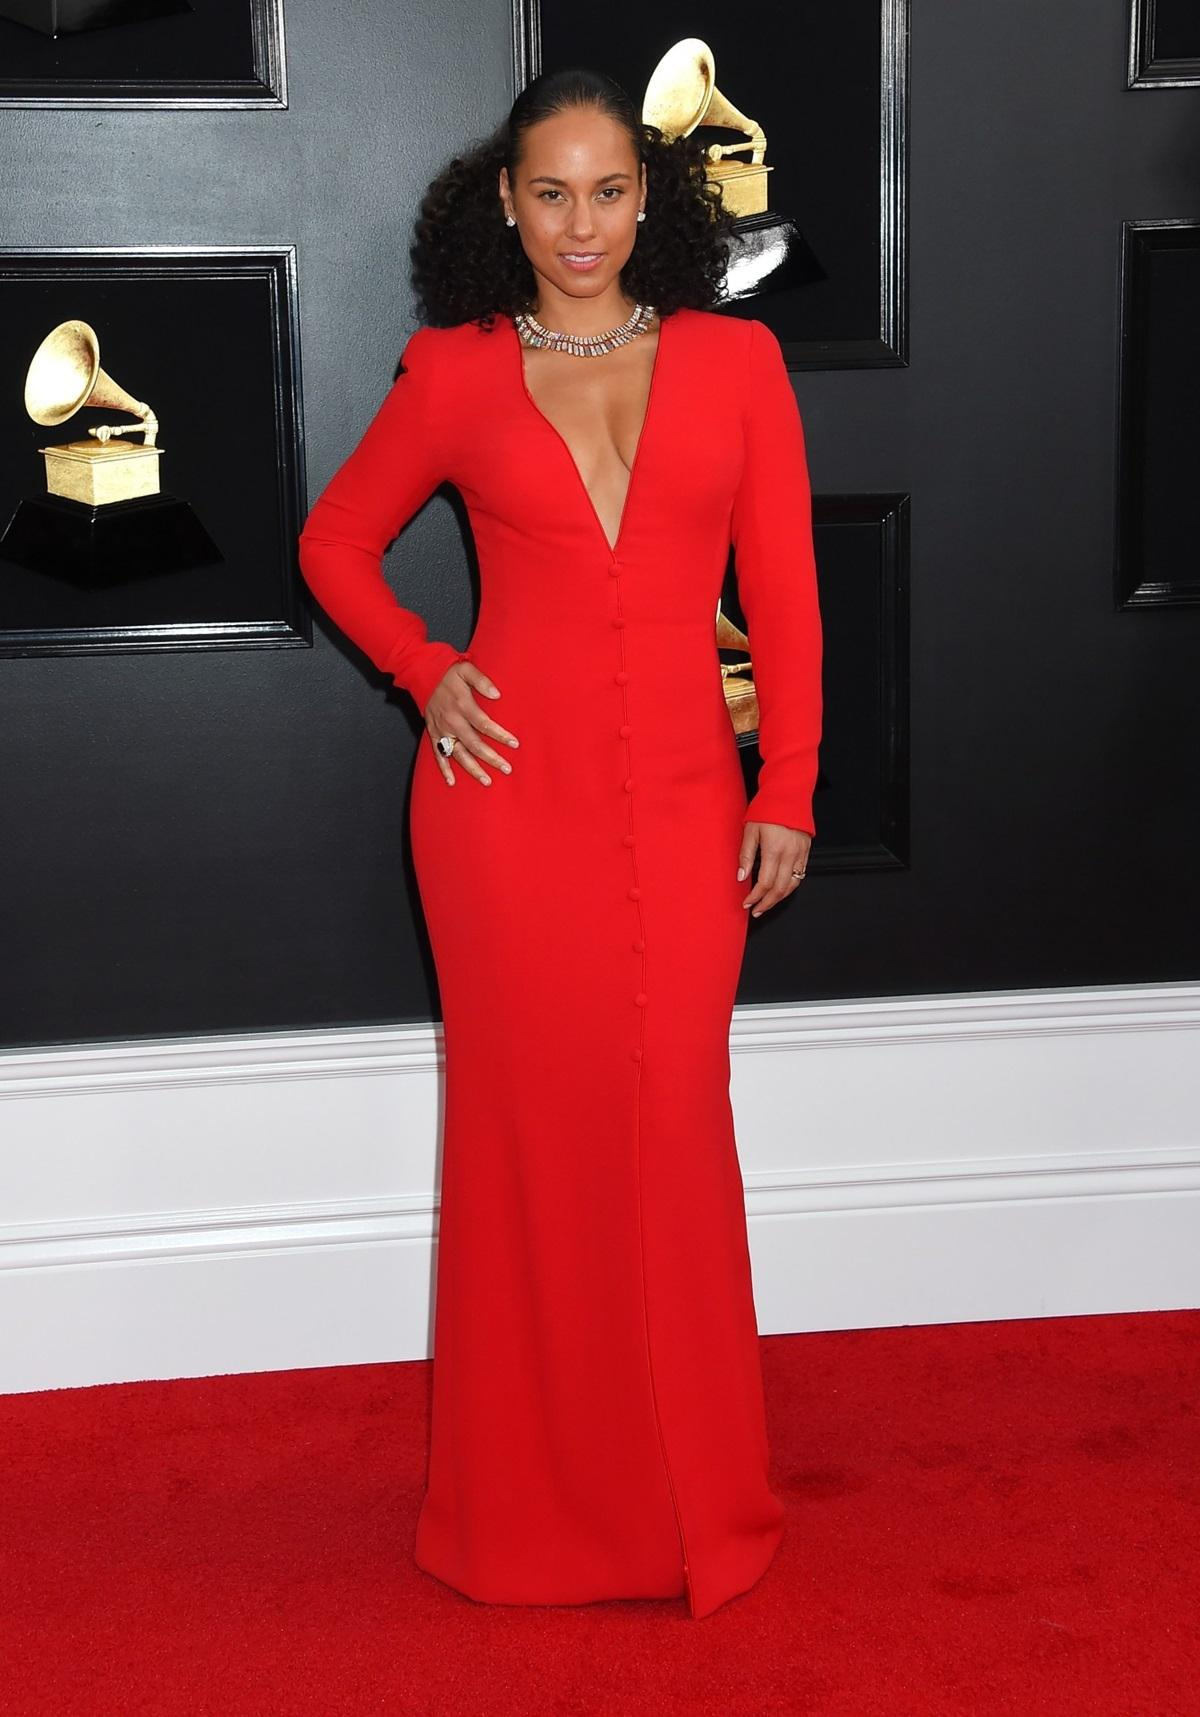 Alicia Keys na rozdaniu Grammy 2019